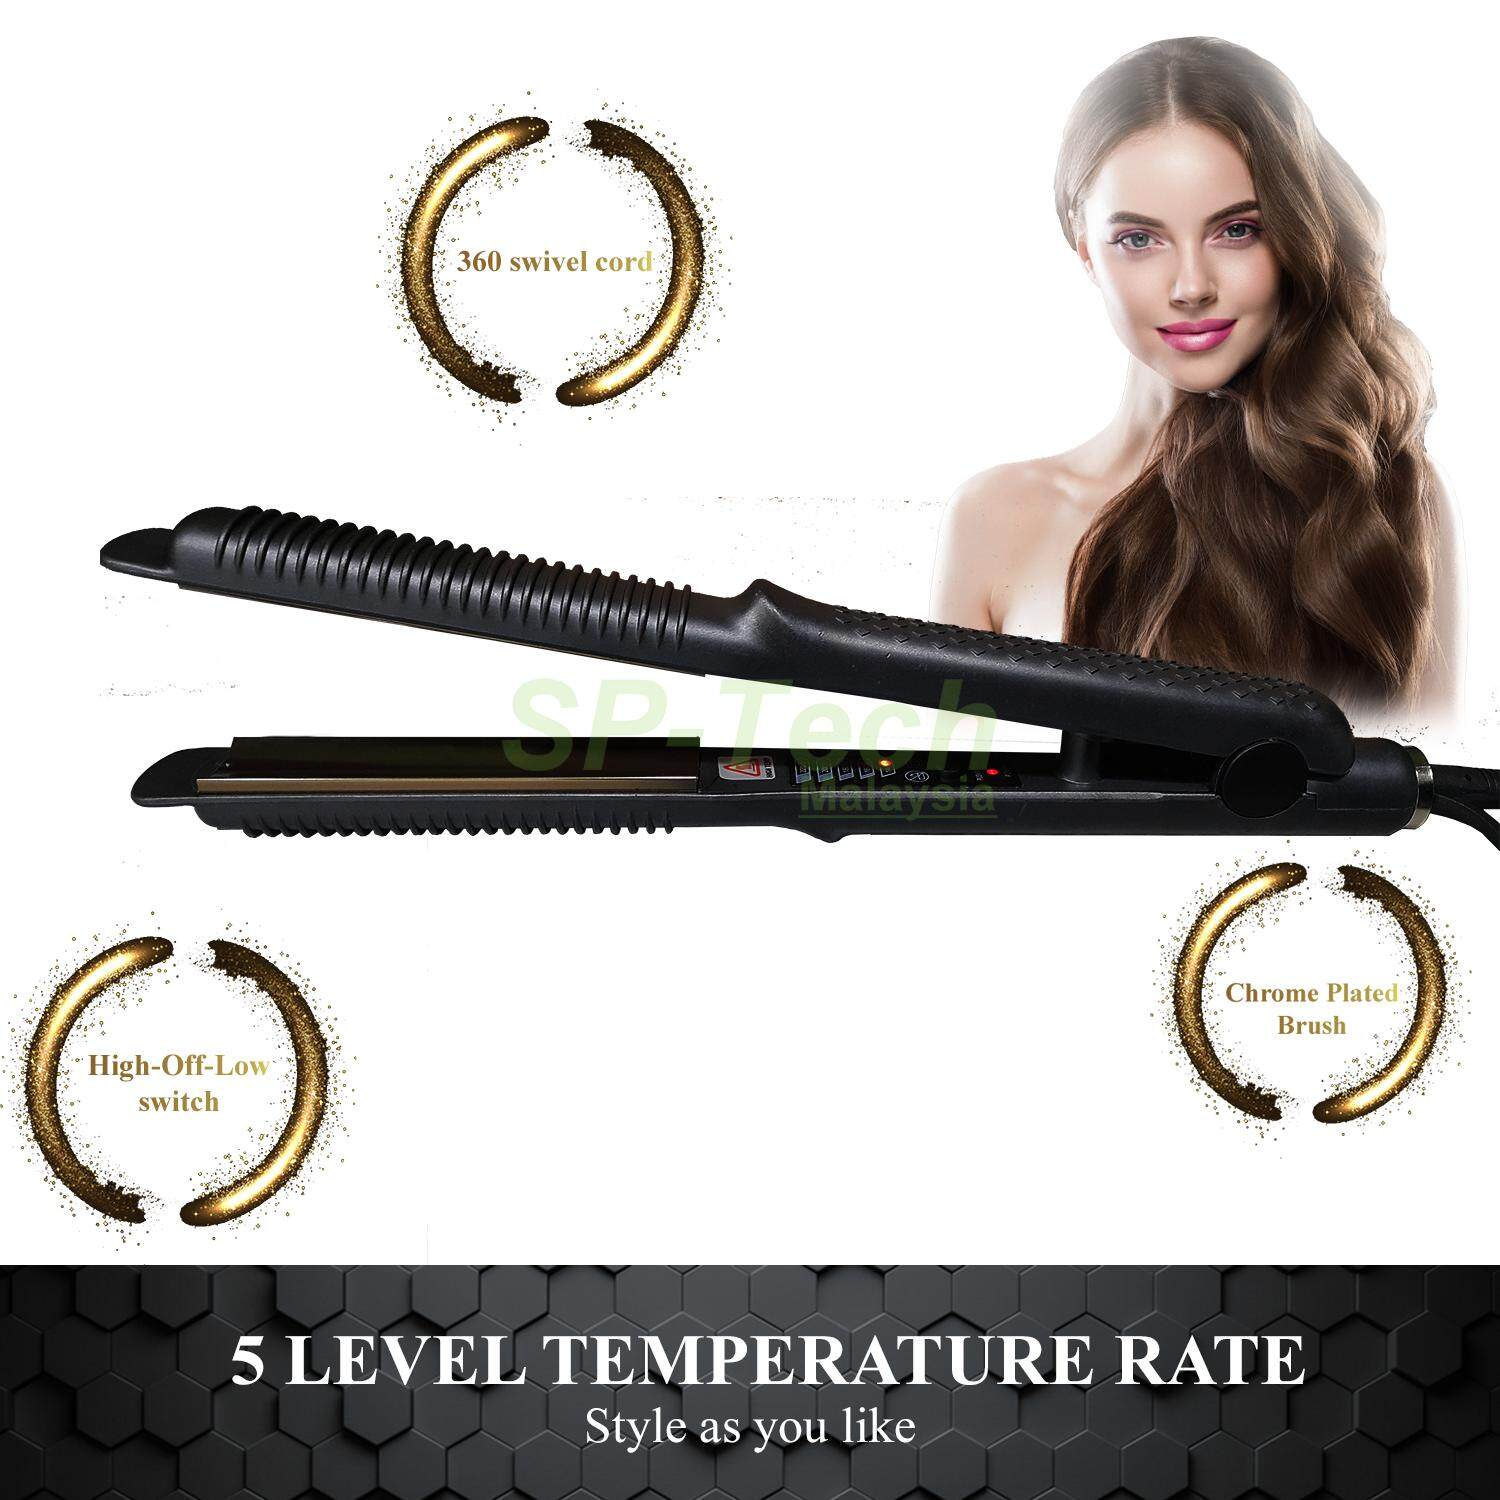 PROFESSIONAL HAIR TOOLS HAIR STRAIGHTER